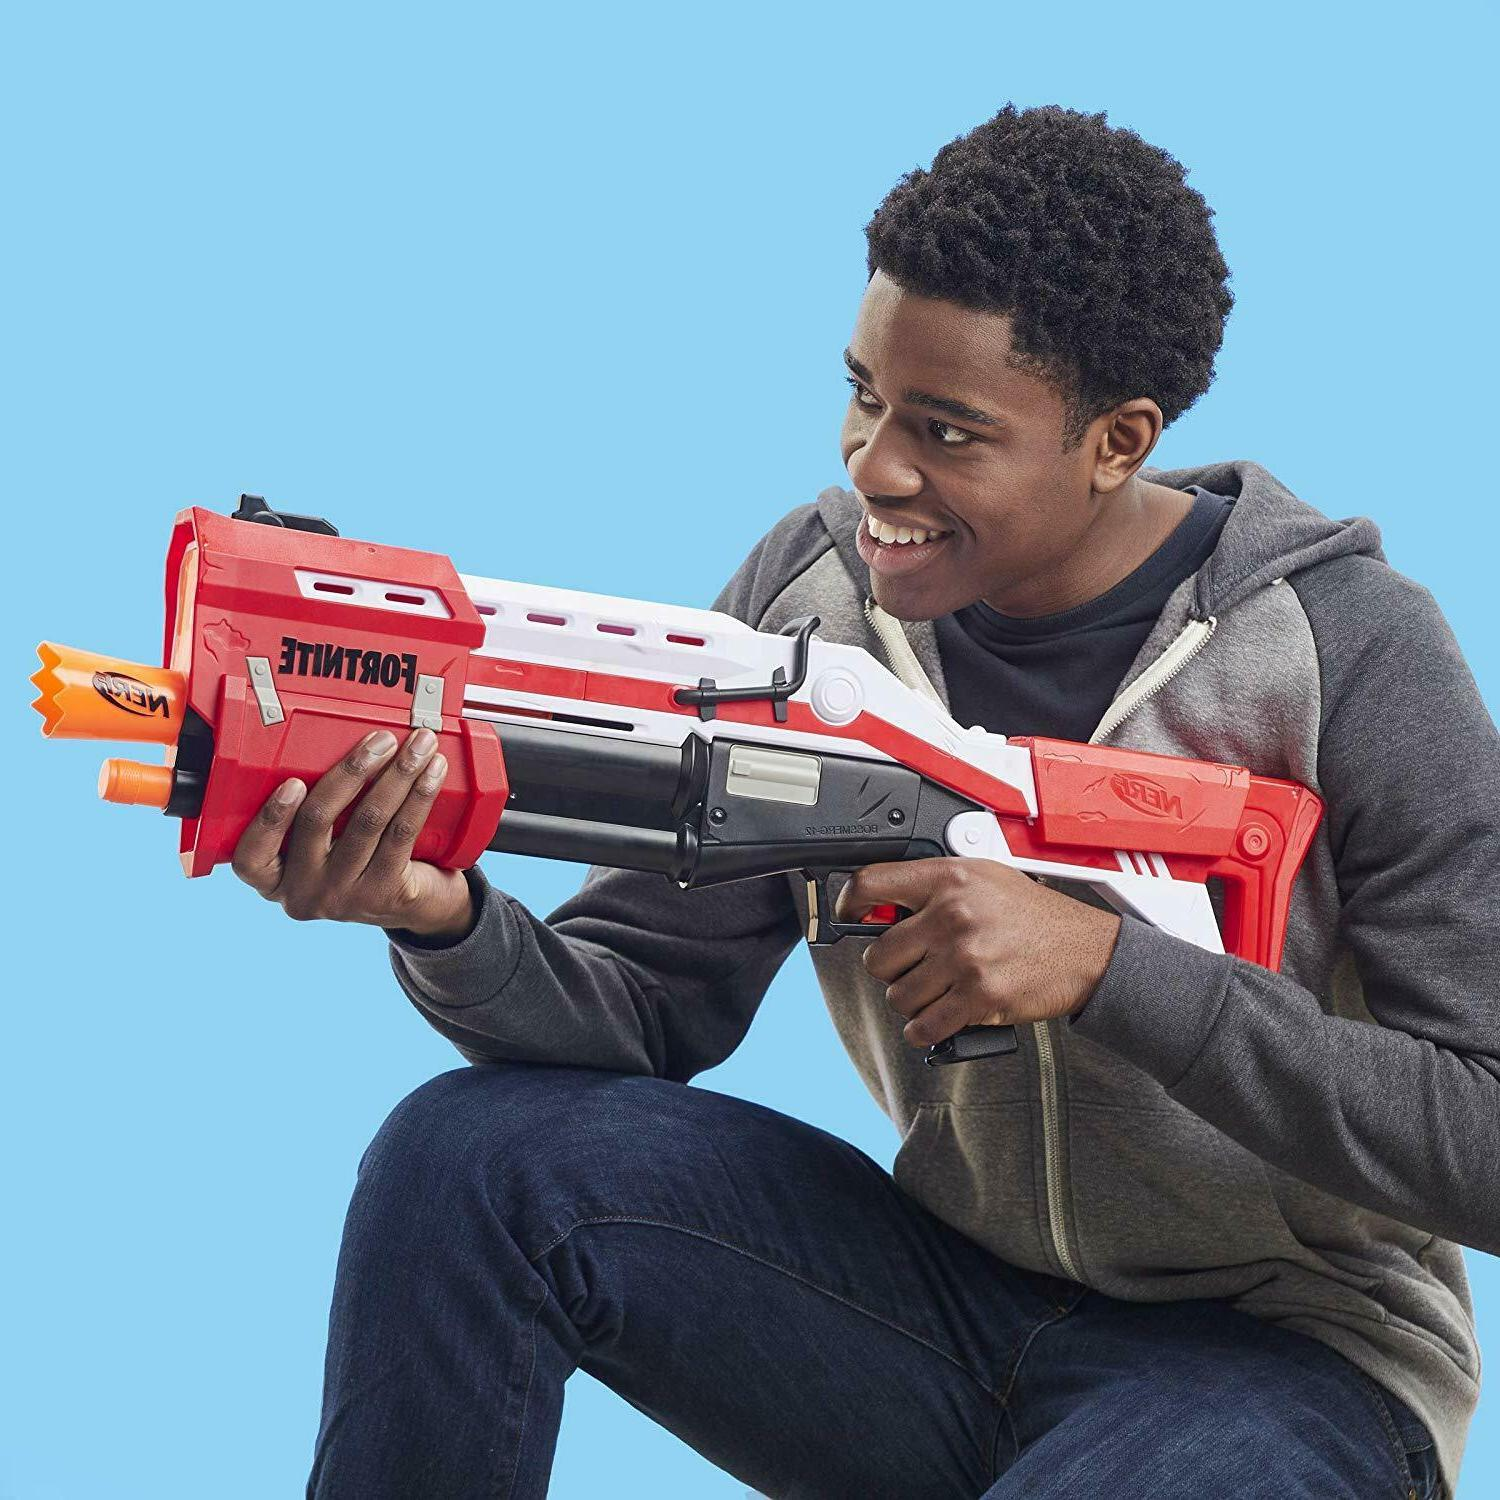 Nerf Guns For Nerf Blaster Guns For Boys Fortnite Nerf Guns